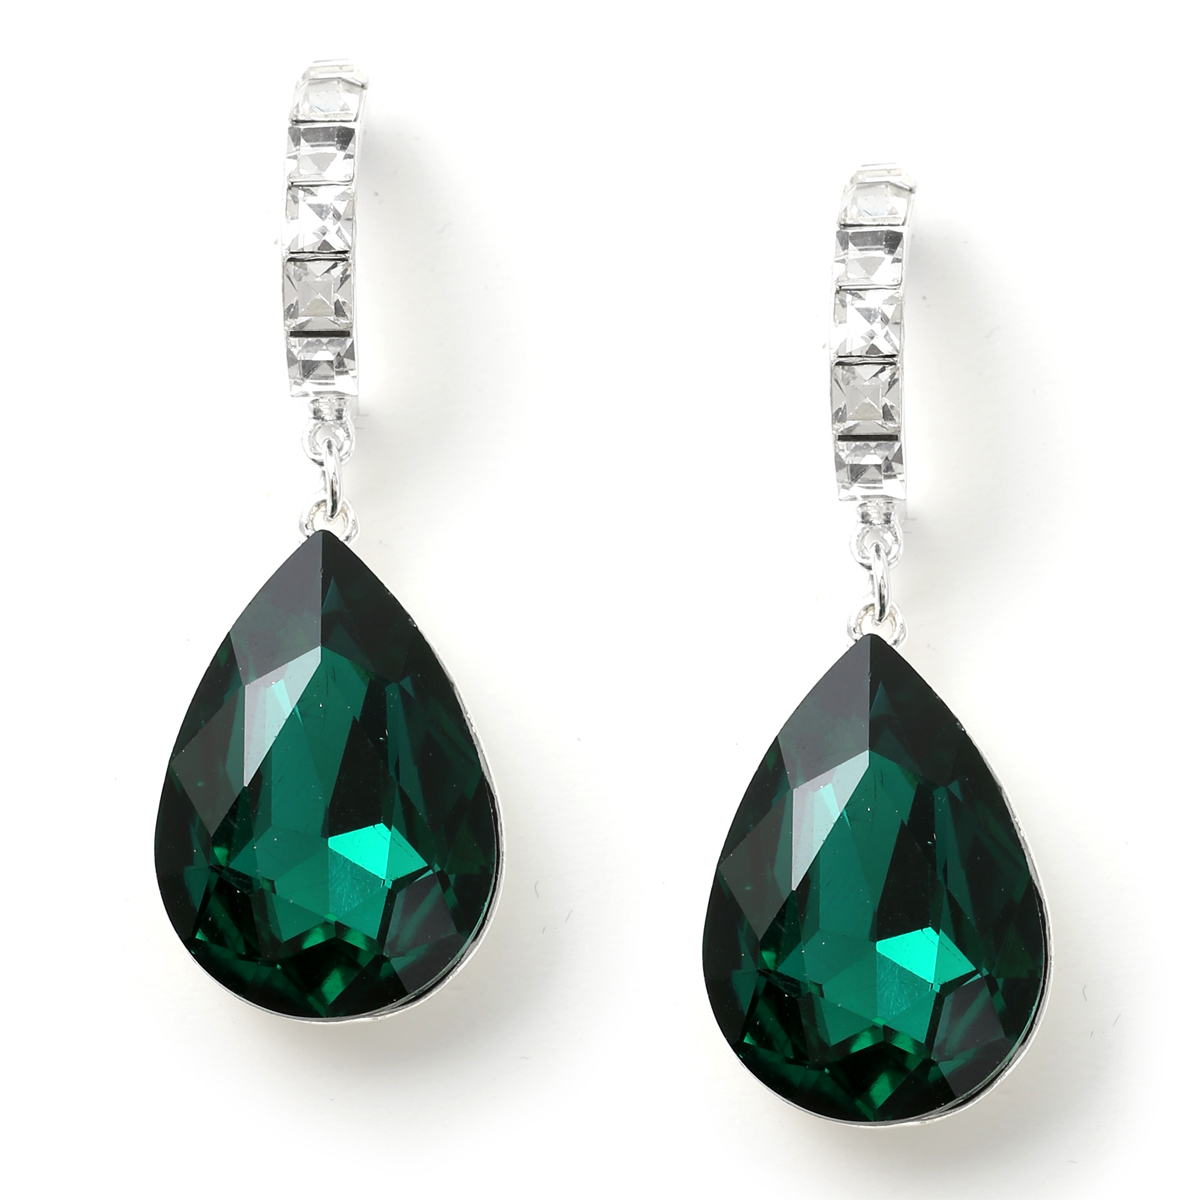 Silver Crystal Square Stone in Semi Hoop with Dangle Large Teardrop Emerald Green Stone Earrings